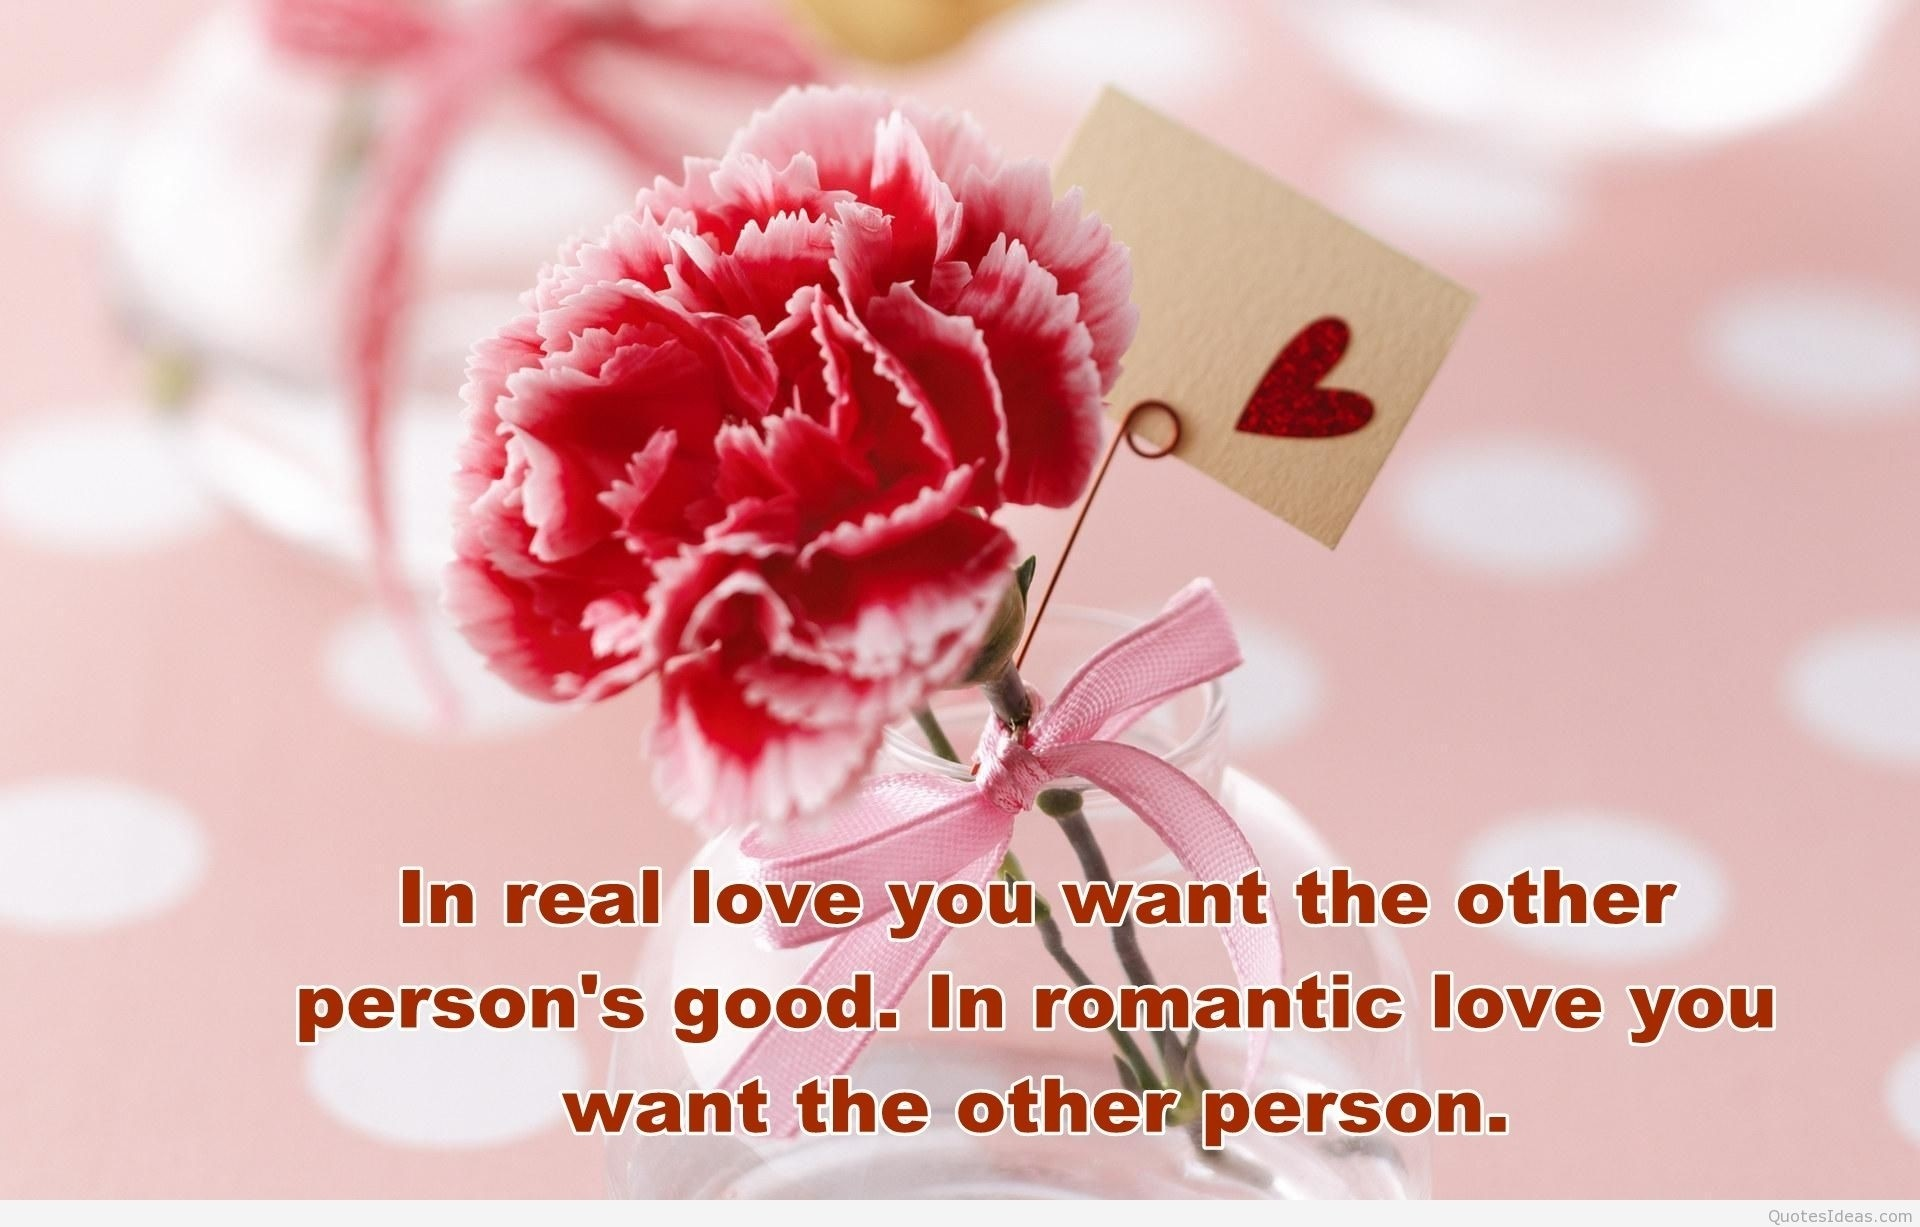 Love Couple Wallpaper With Quotes In Hindi Love Poems Wallpaper 183 ① Wallpapertag